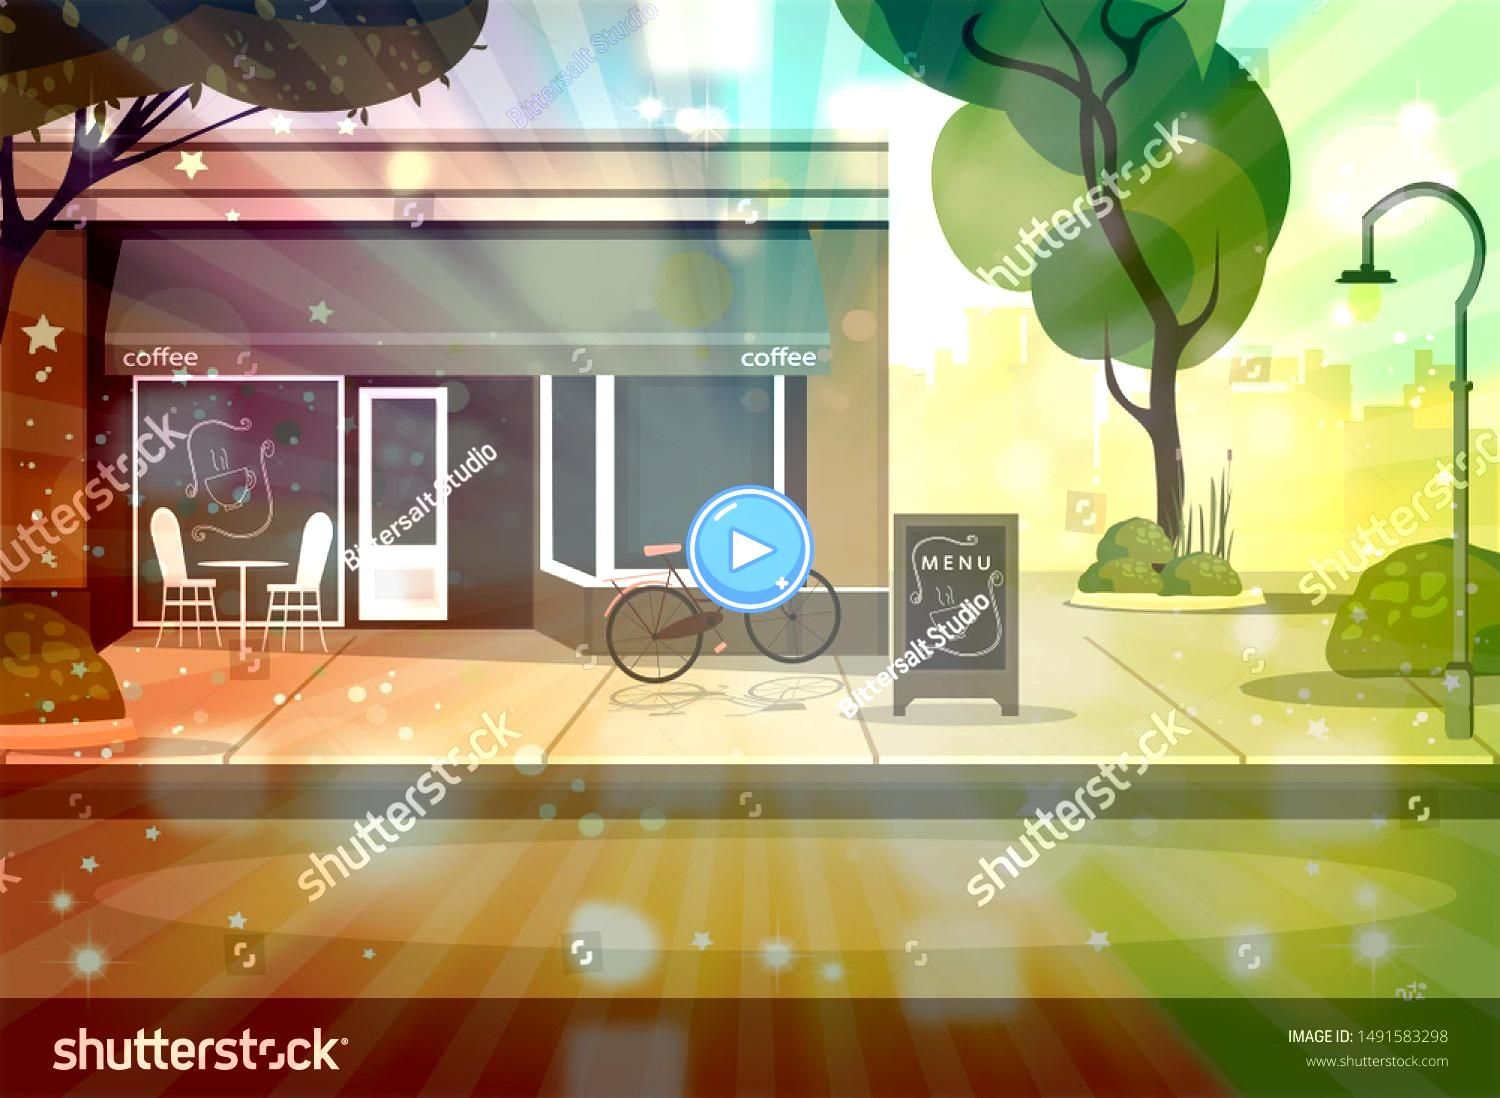 Shop Building Illustration Central Cafe Building with Element for Construction of Urban Landscape Flat Cartoon Vector Illustration in Colored Style  Vector Coffee Shop Bu...